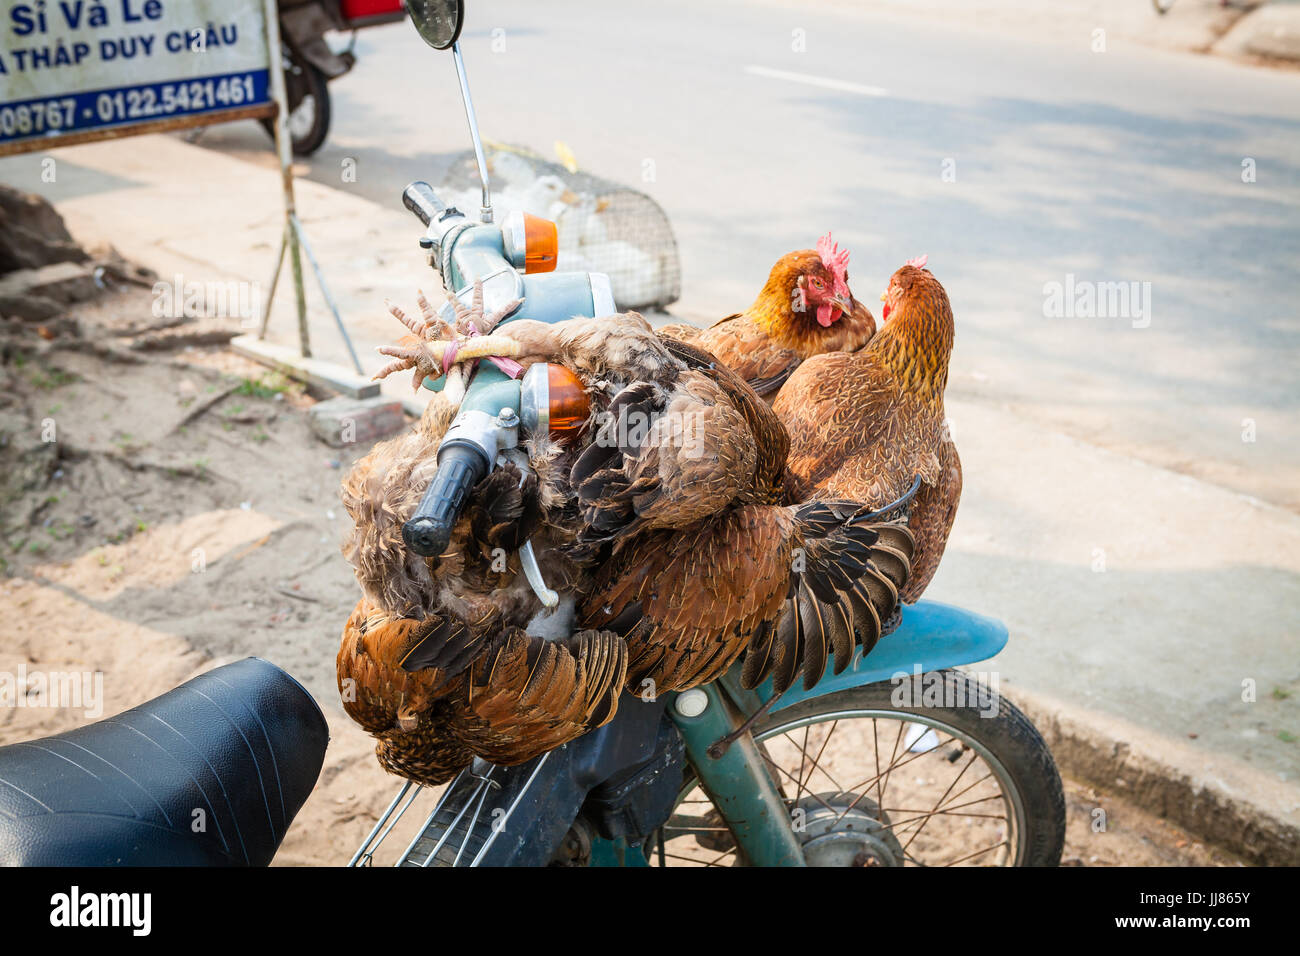 Middle Vietnam - March 14, 2017: traditional way of transporting live poultry is to tie the birds to the scooter - Stock Image